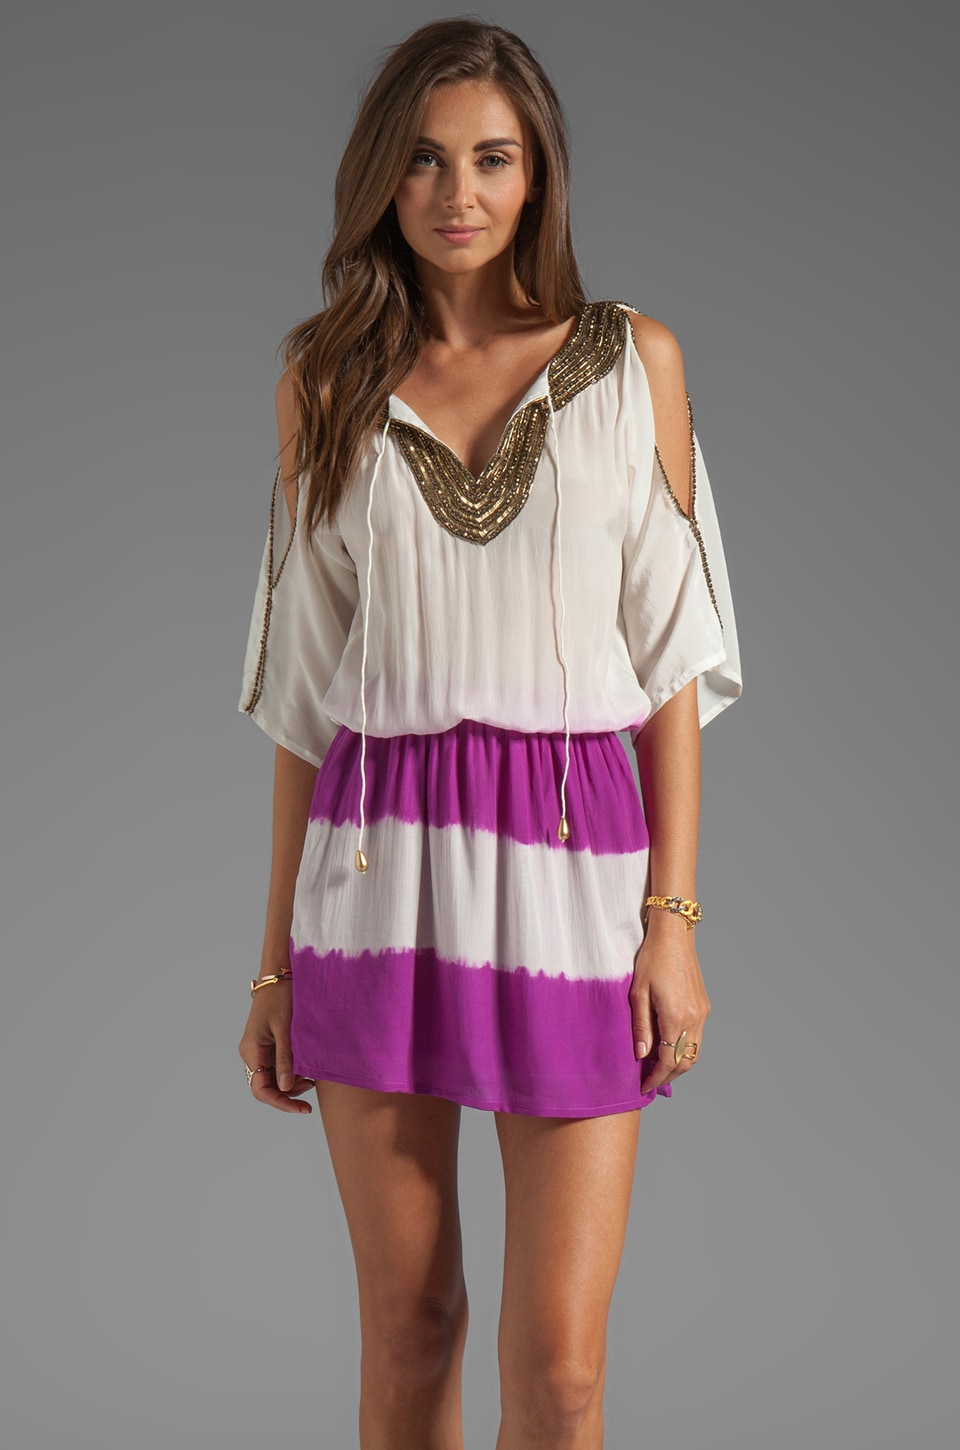 Karina Grimaldi Grecia Beaded Mini in Purple Tie Dye